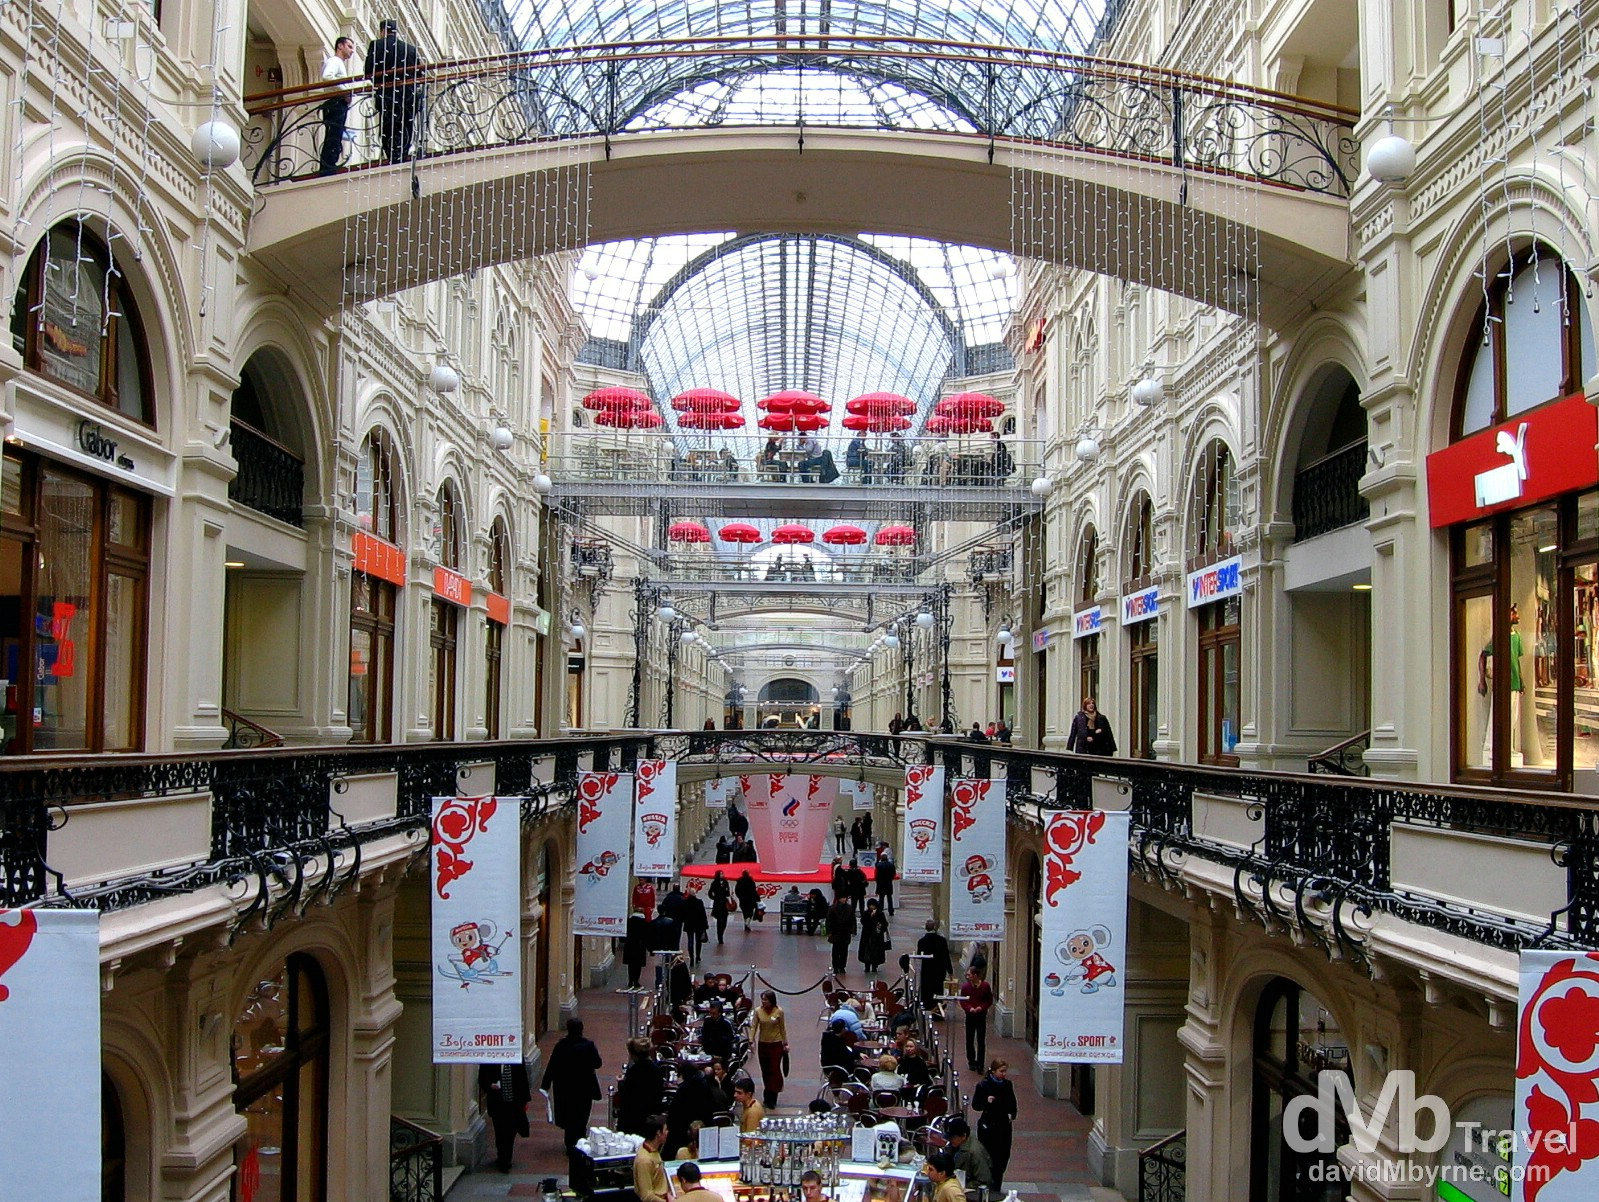 The interior of the GUM Department Store, Red Square, Moscow, Russia. February 26, 2006.